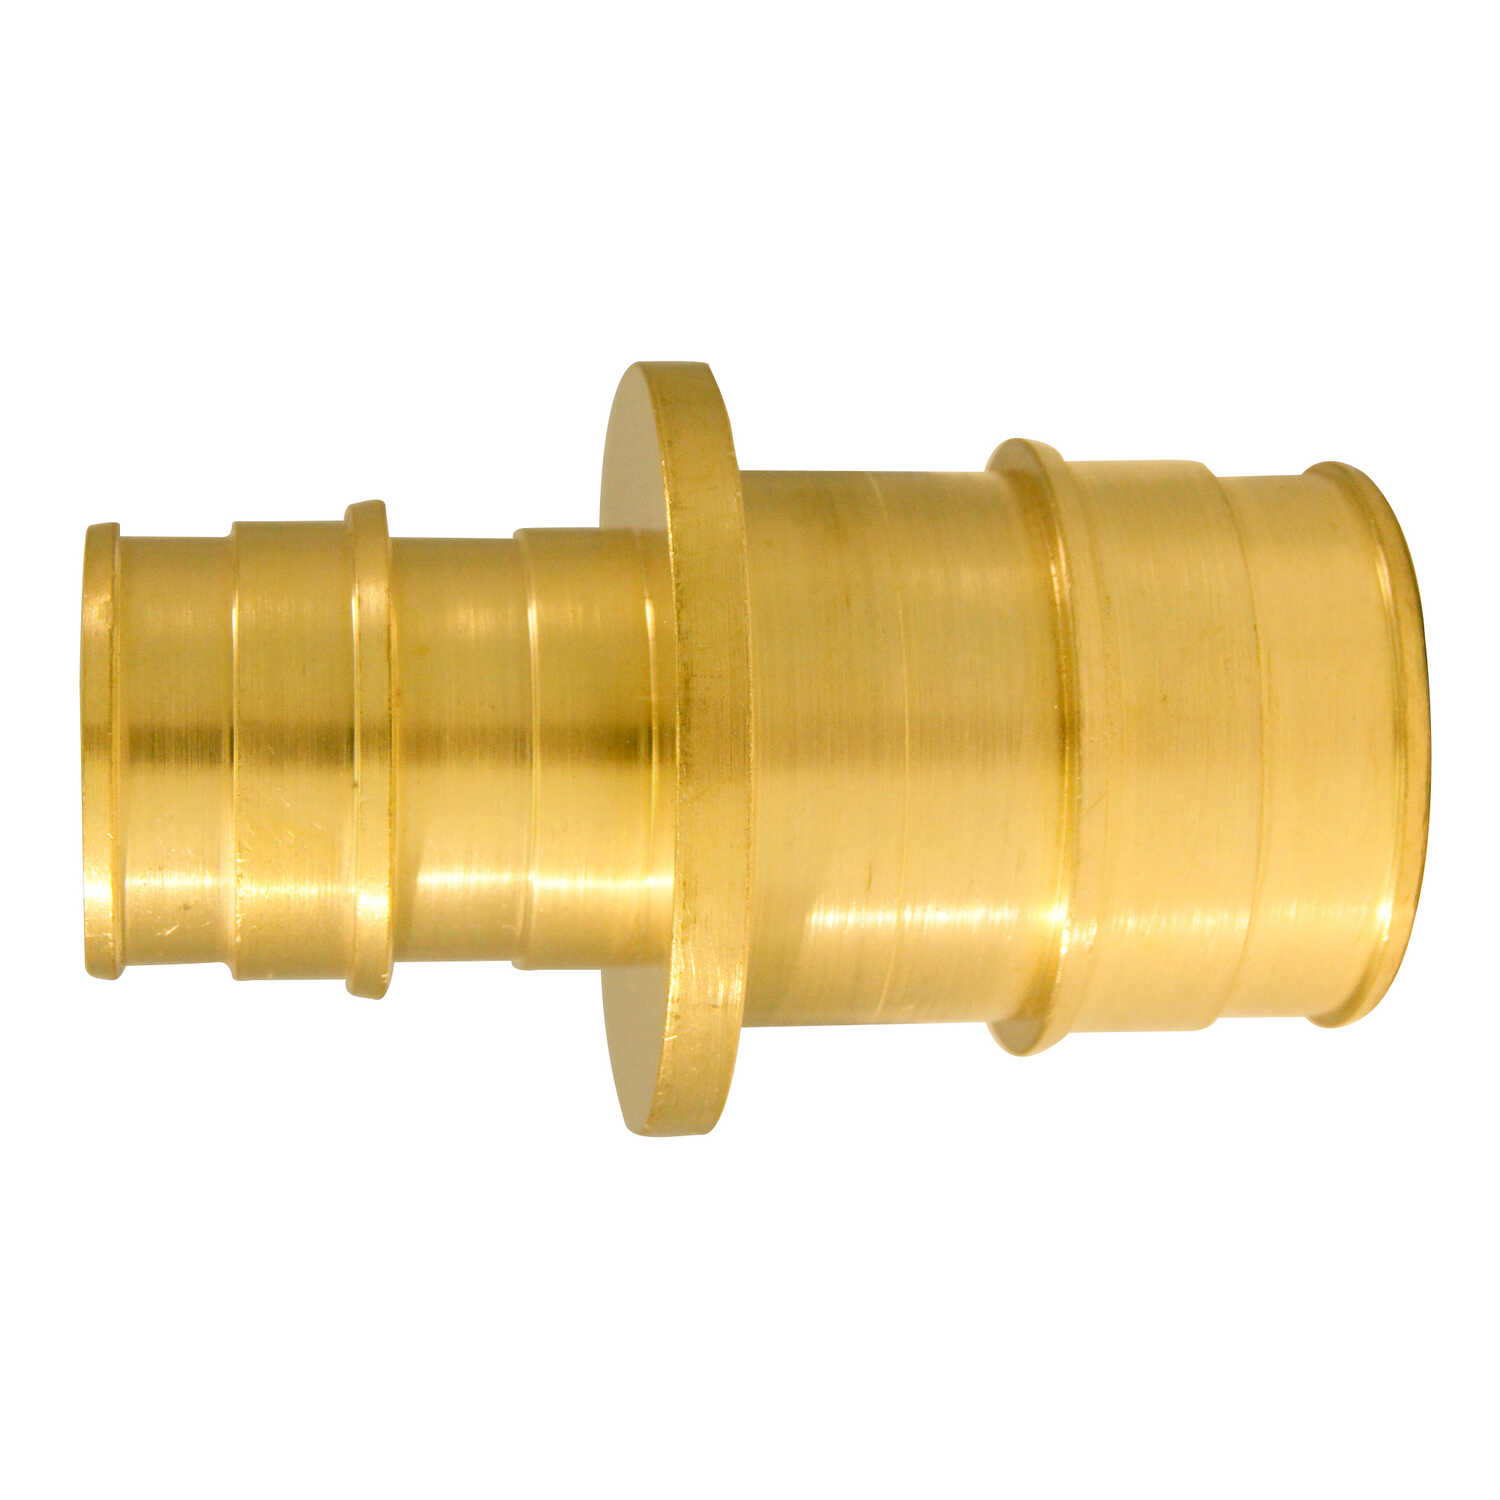 Apollo  Expansion PEX / Pex A  1 in. PEX   x 3/4 in. Dia. PEX  1 each Coupling